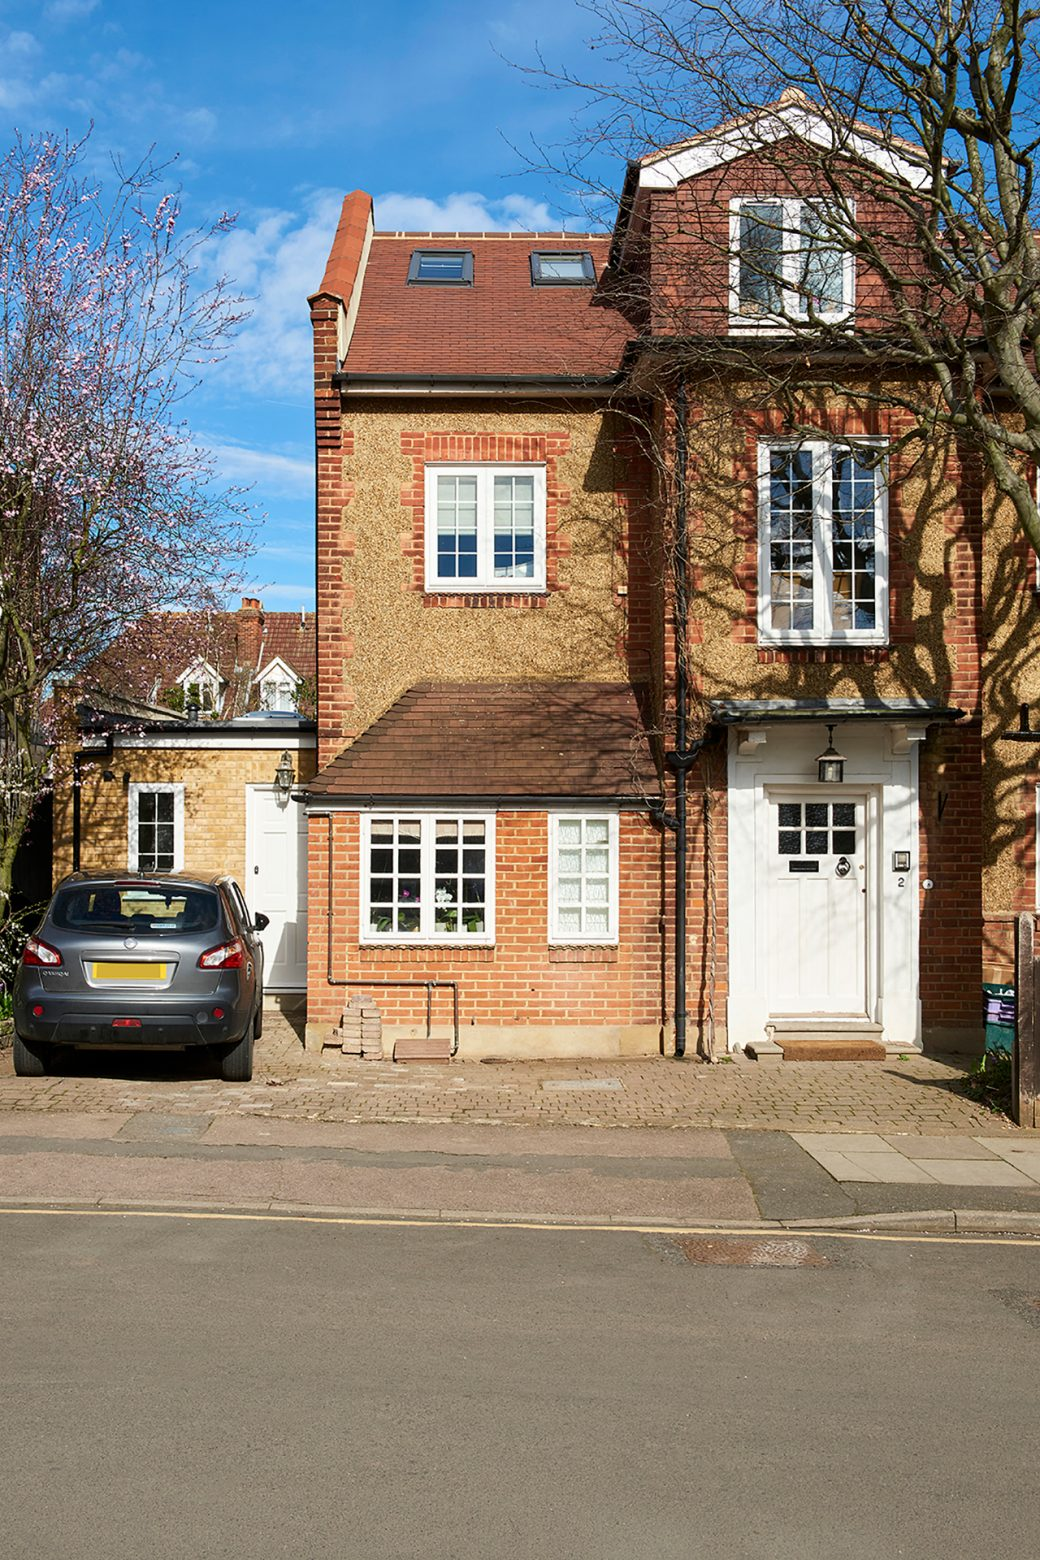 The front of the newly refurbished house with car parked outside